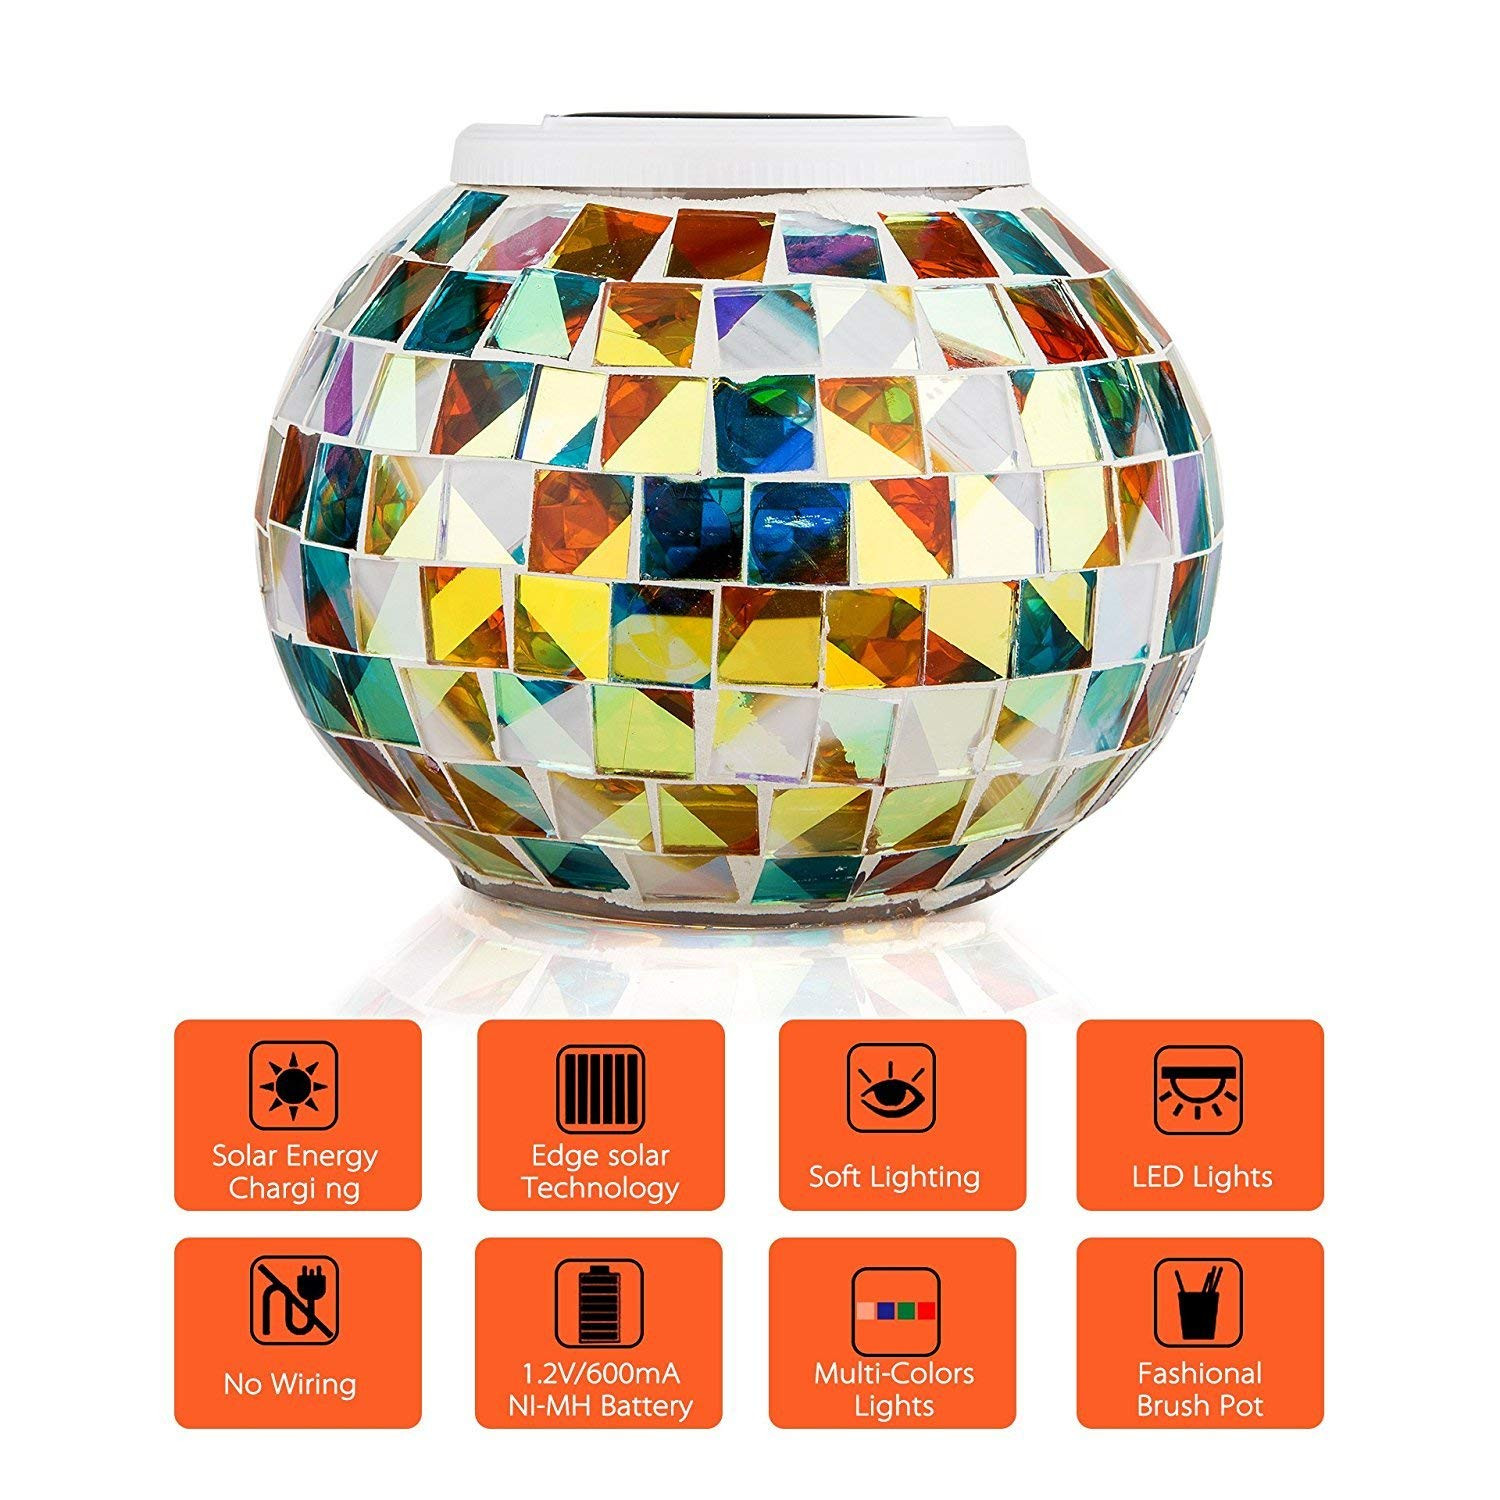 amber crackle glass vase of solar powered mosaic glass merrynine solar table lamp color within solar powered mosaic glass merrynine solar table lamp color changing glass led rechargeable solar night lamp waterproof solar outdoor lights for home